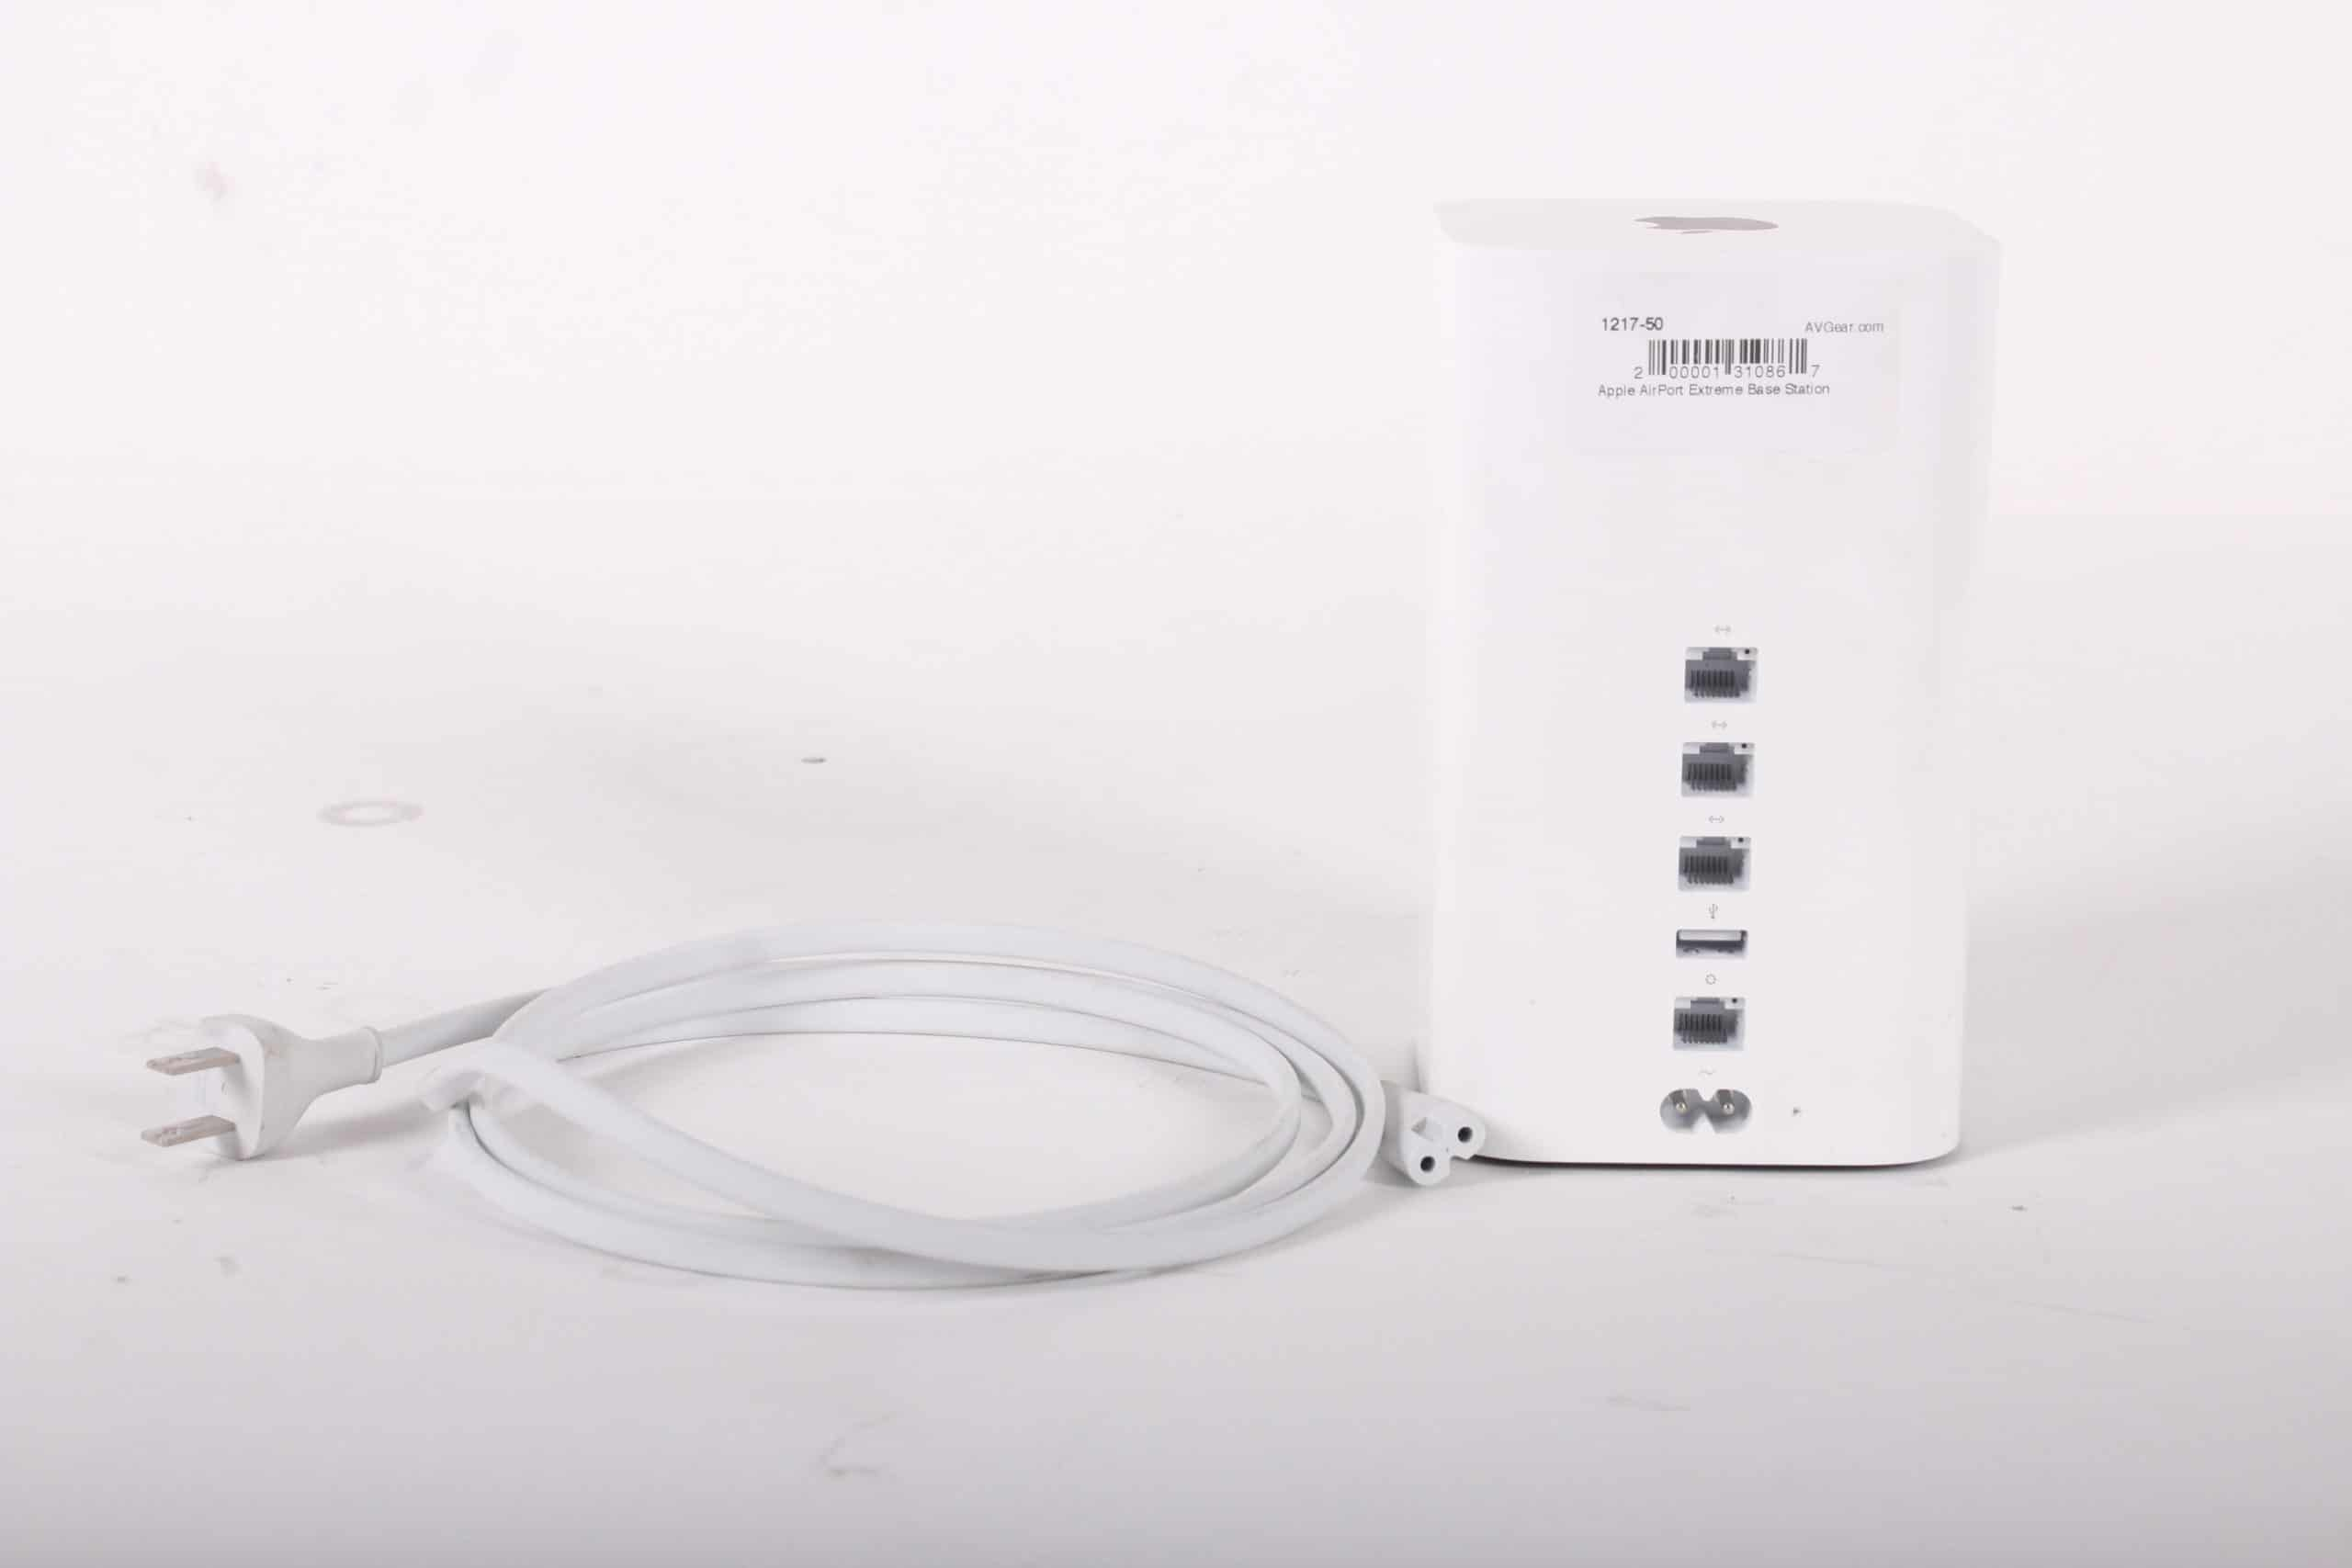 apple-airport-extreme-base-station MAIN